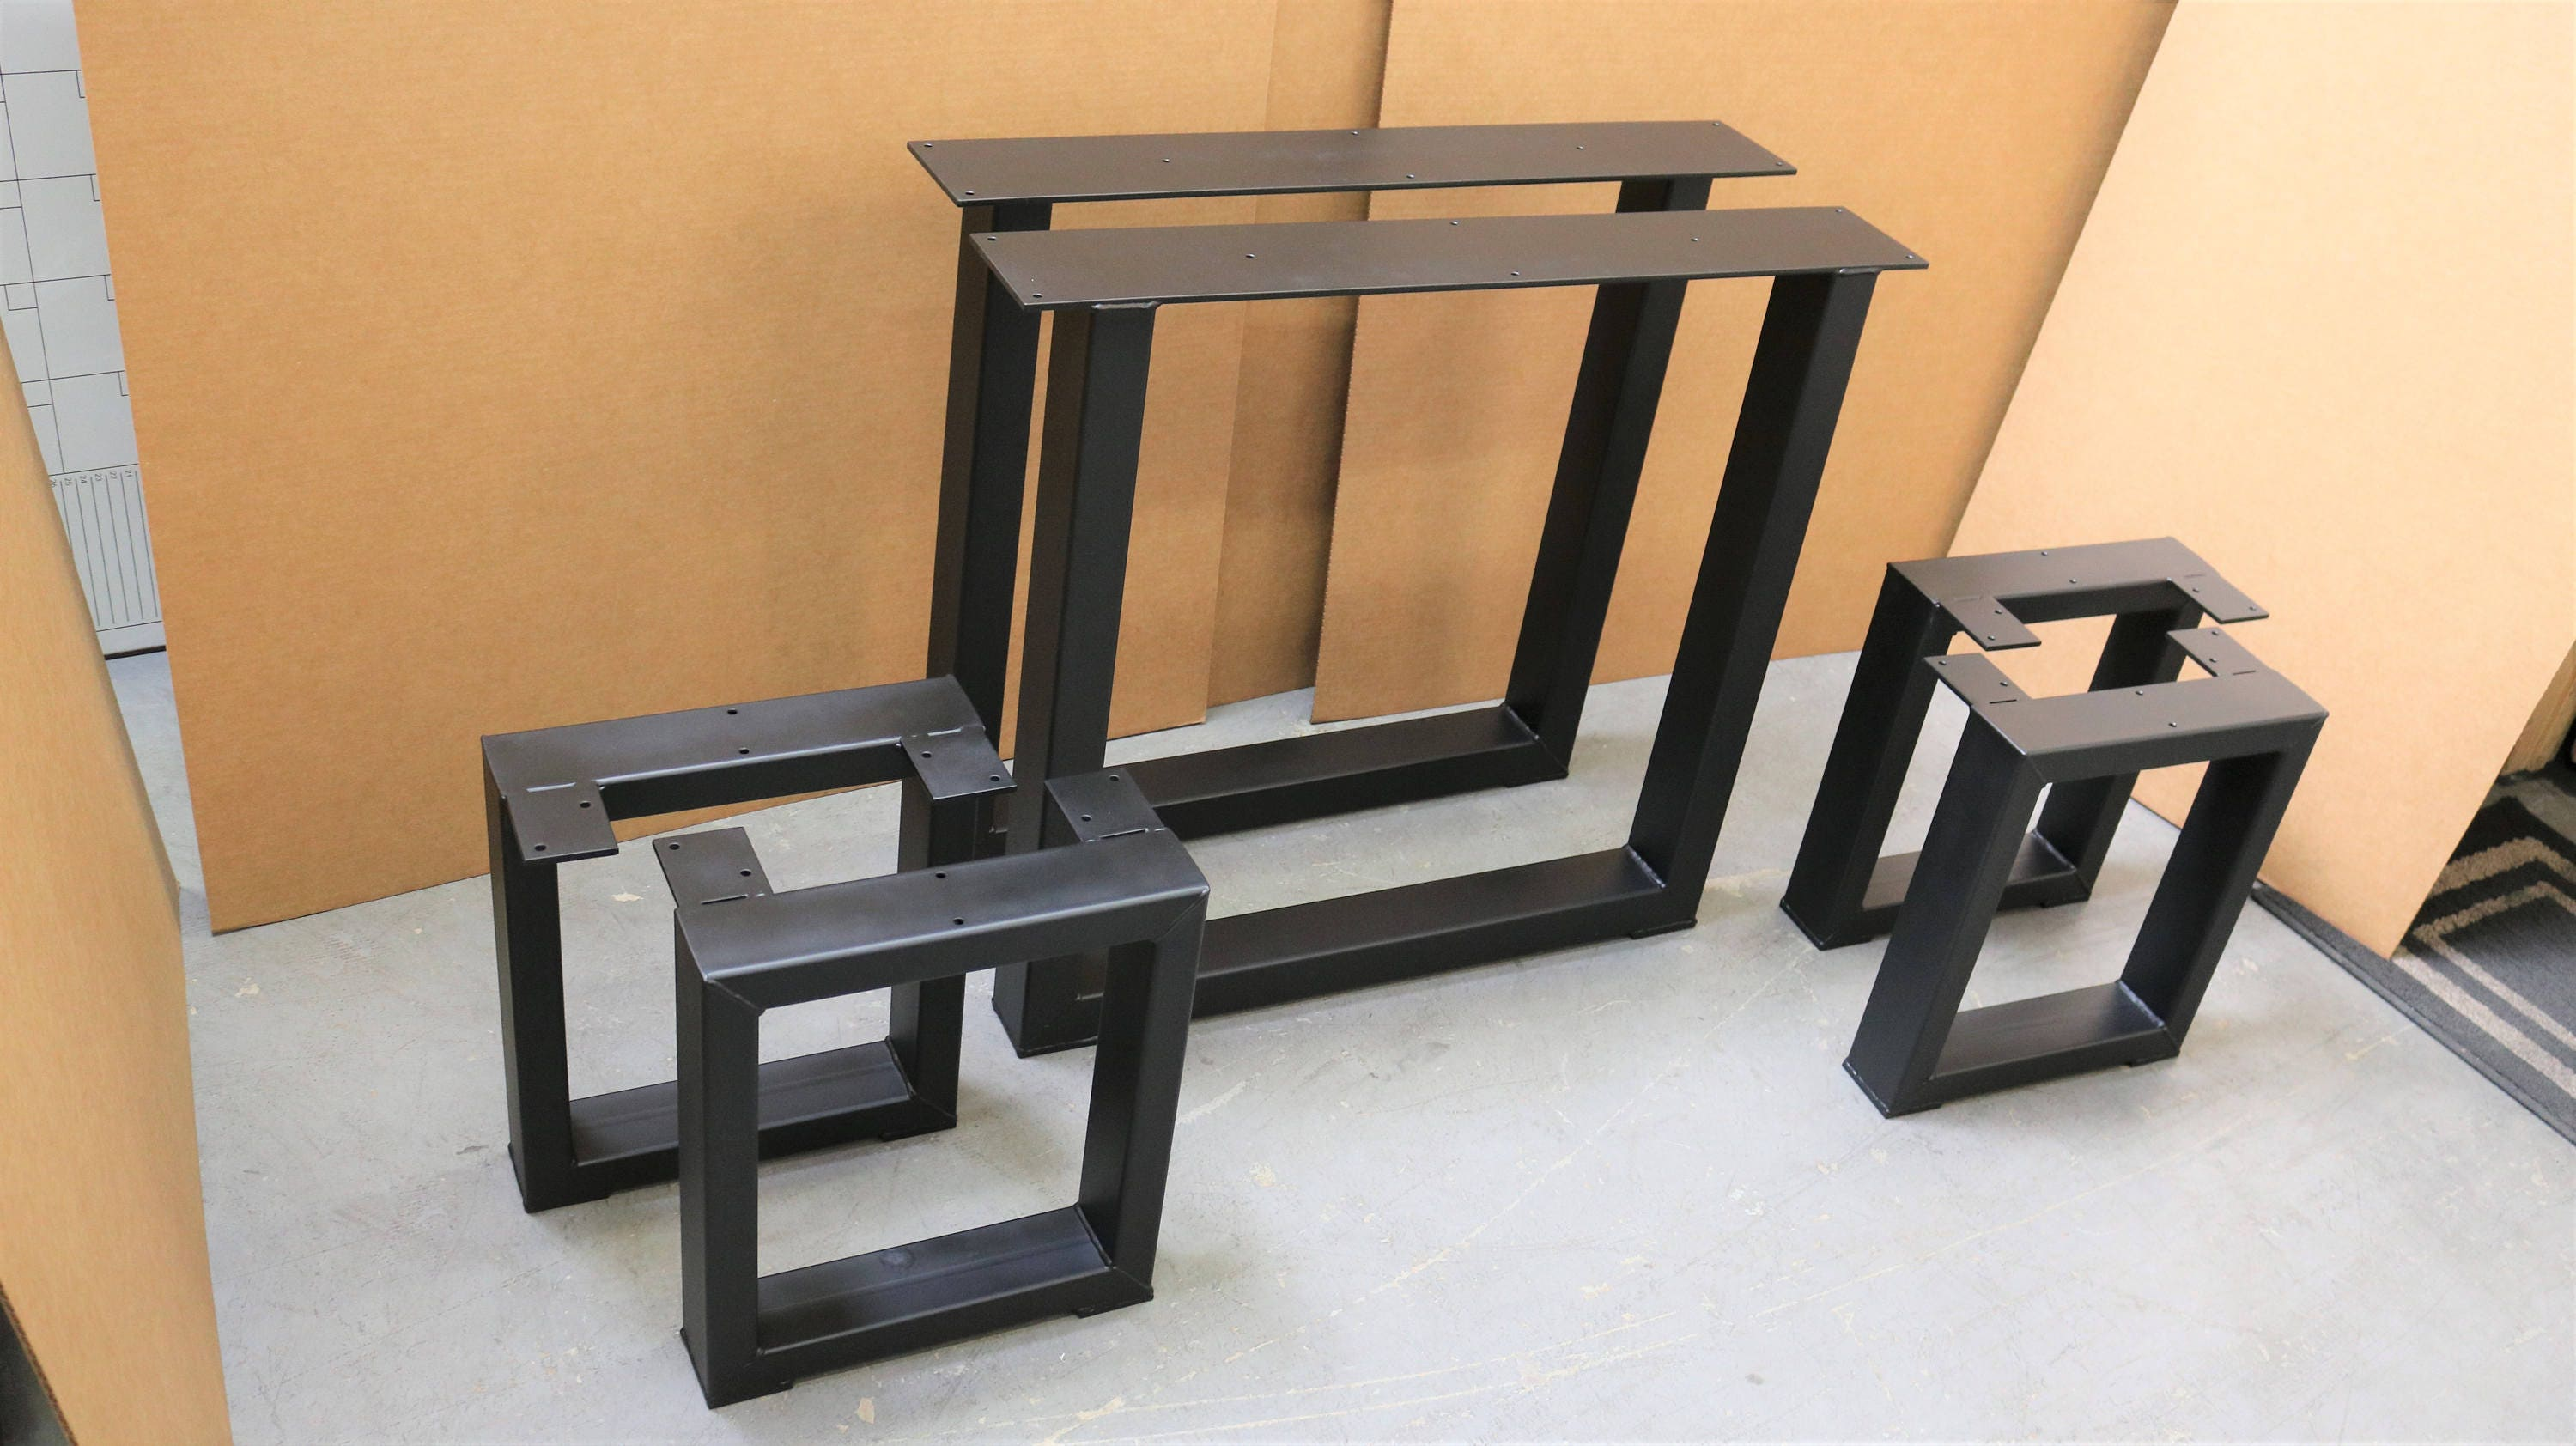 set of 2 square table legs and 4 square bench legs model tbtsq13 industrial metal tubing legs. Black Bedroom Furniture Sets. Home Design Ideas